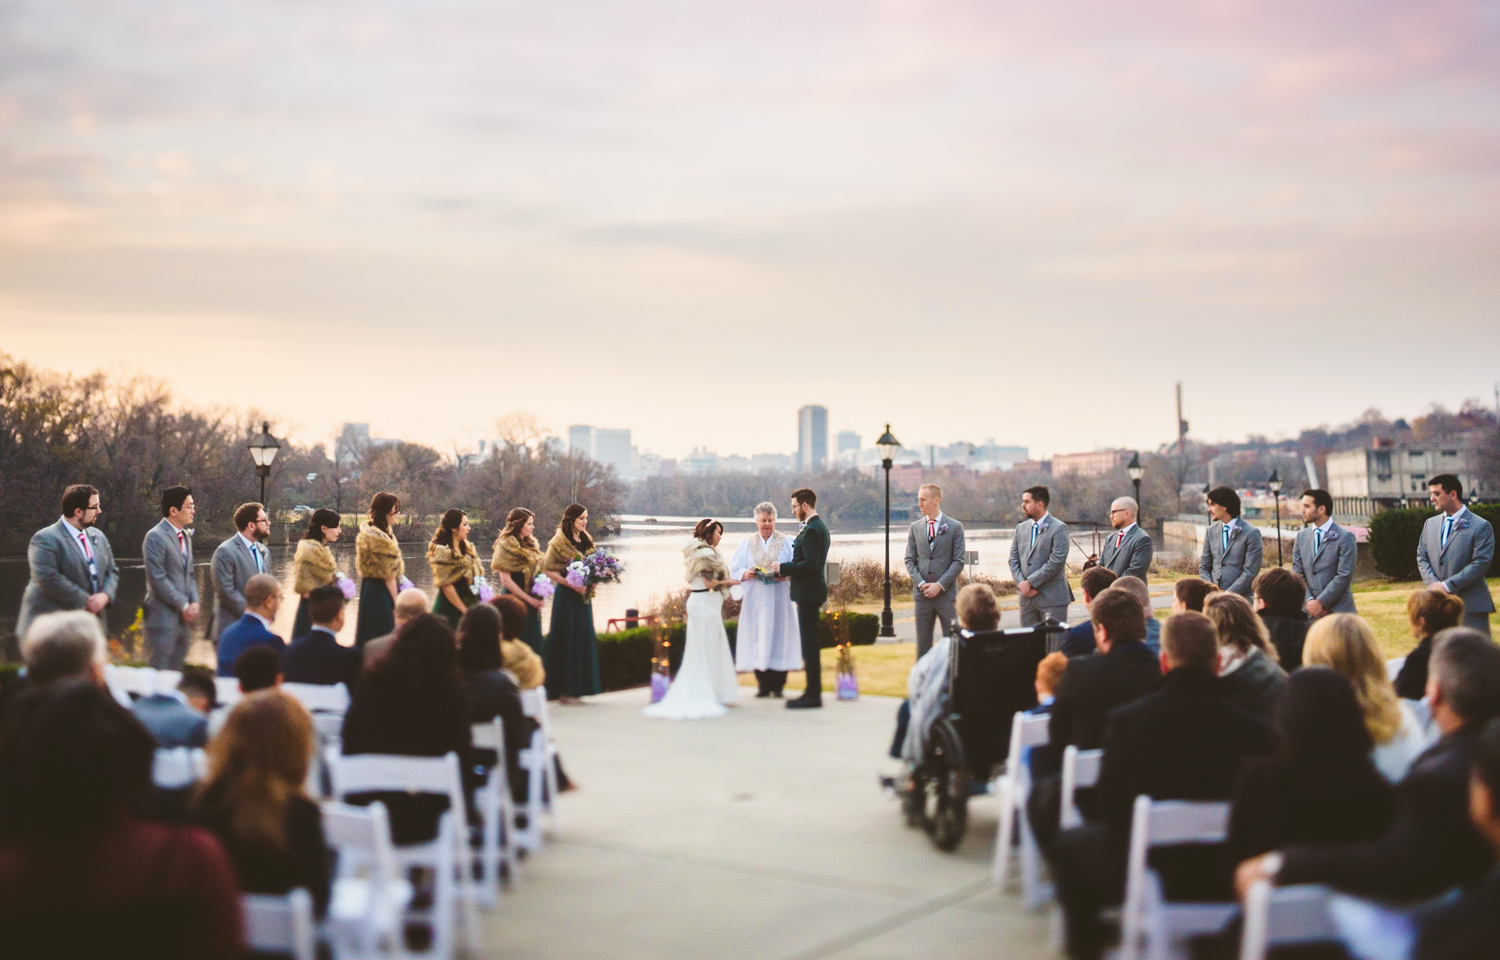 013 - beautiful sunset wedding at the boathouse at rocketts landing.jpg